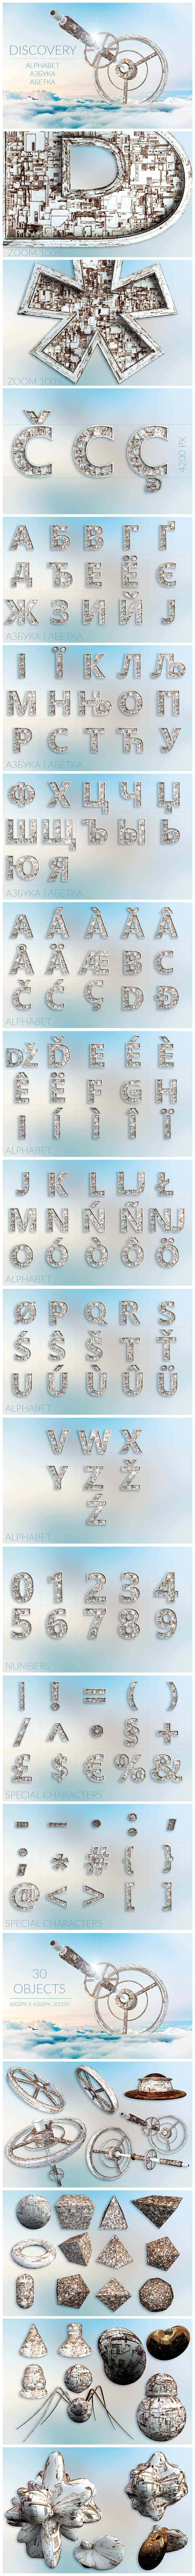 Huge Graphic Bundle Alphabet with 1000+ elements - $25 - Discovery min